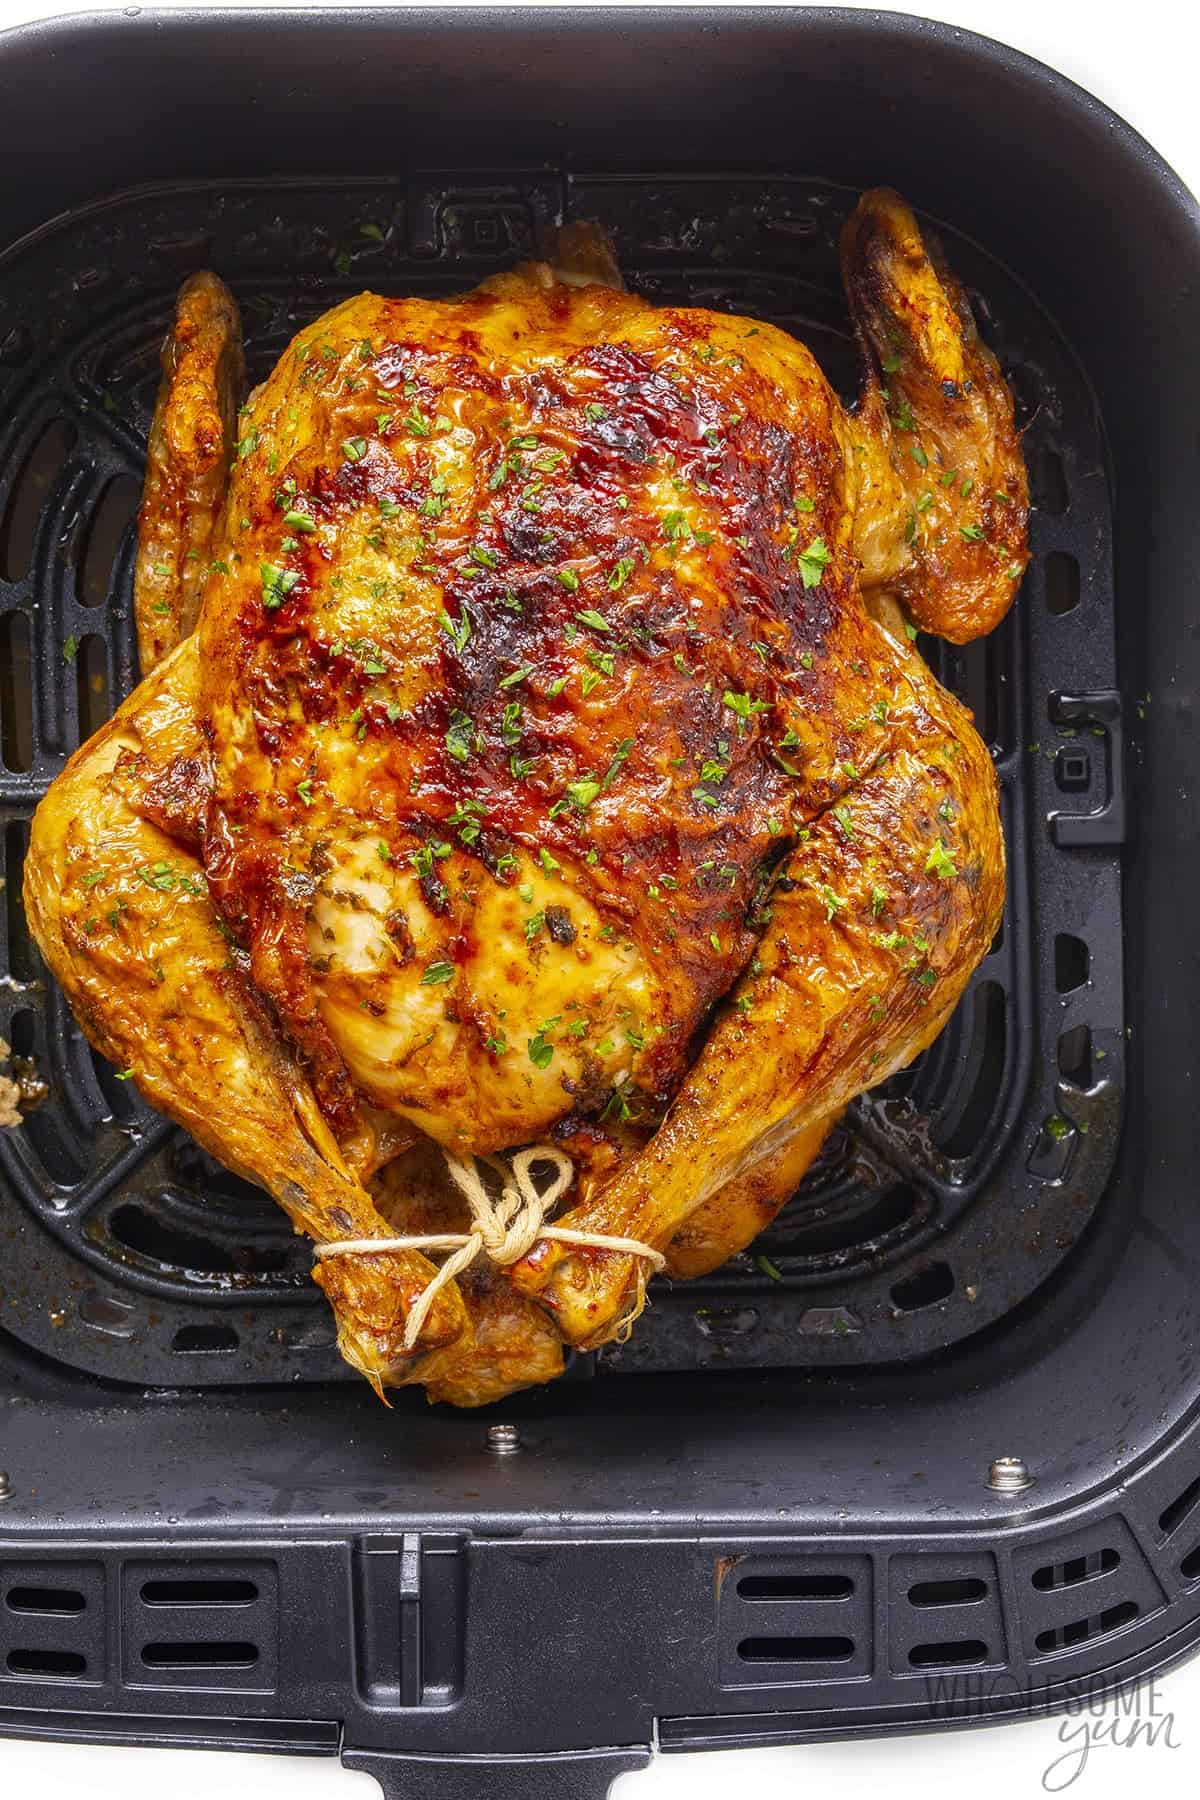 Fully cooked chicken in the air fryer basket